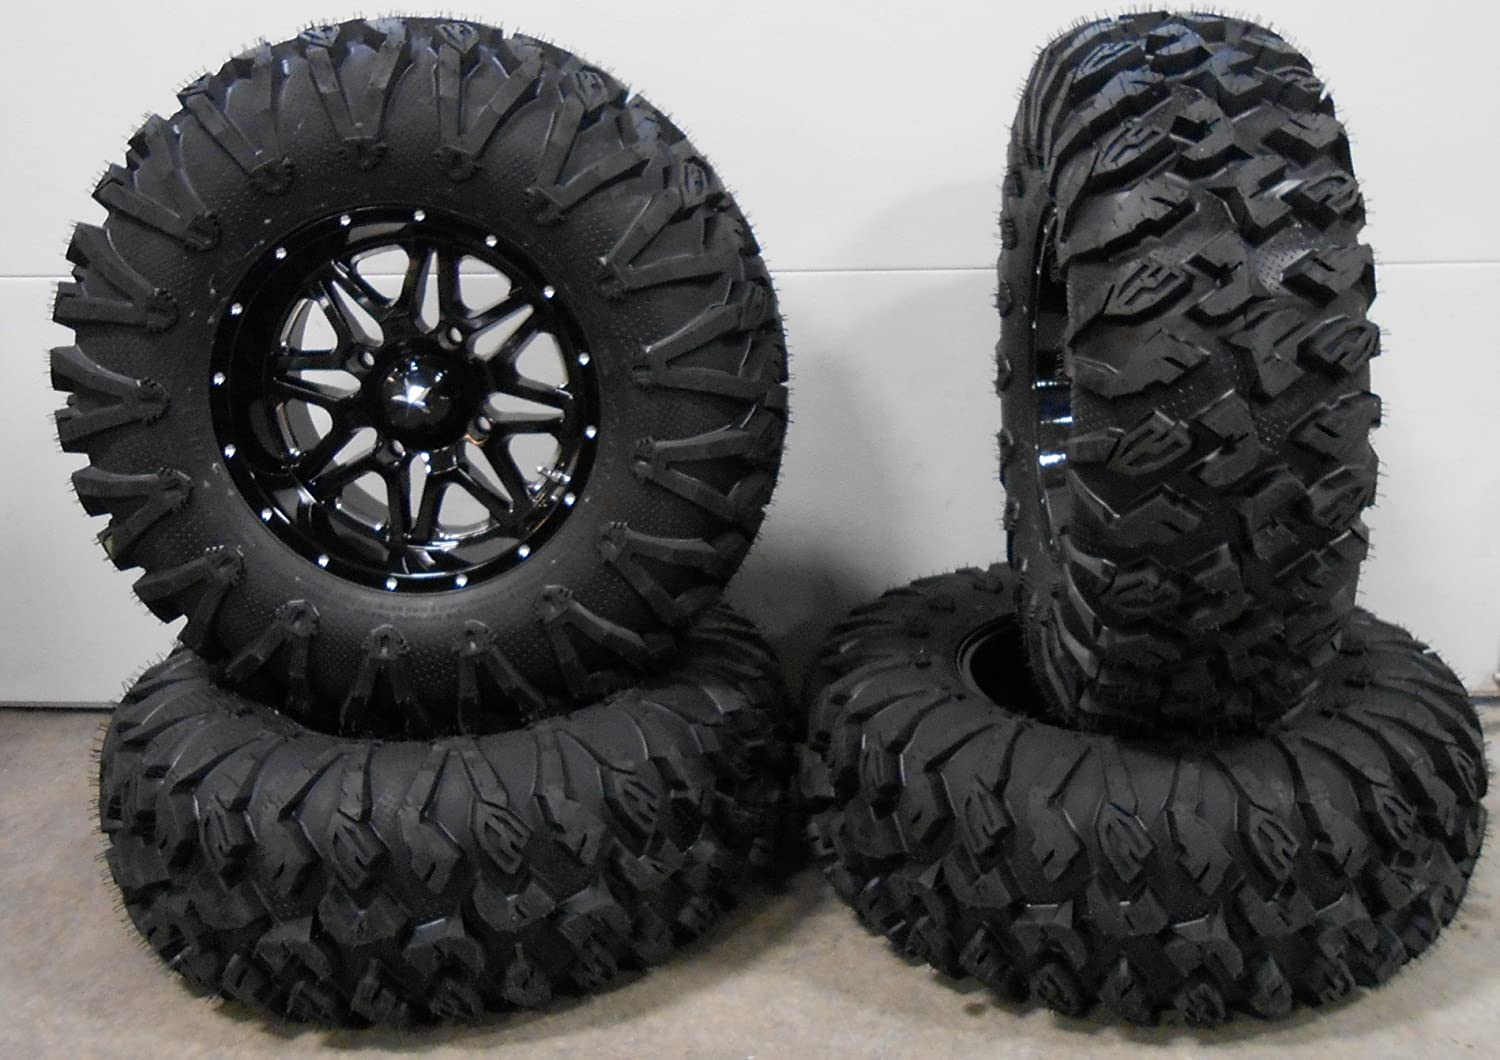 Bundle - 9 Items: MSA Black Vibe 14' ATV Wheels 30' MotoClaw Tires [4x156 Bolt Pattern 12mmx1.5 Lug Kit] Multiple